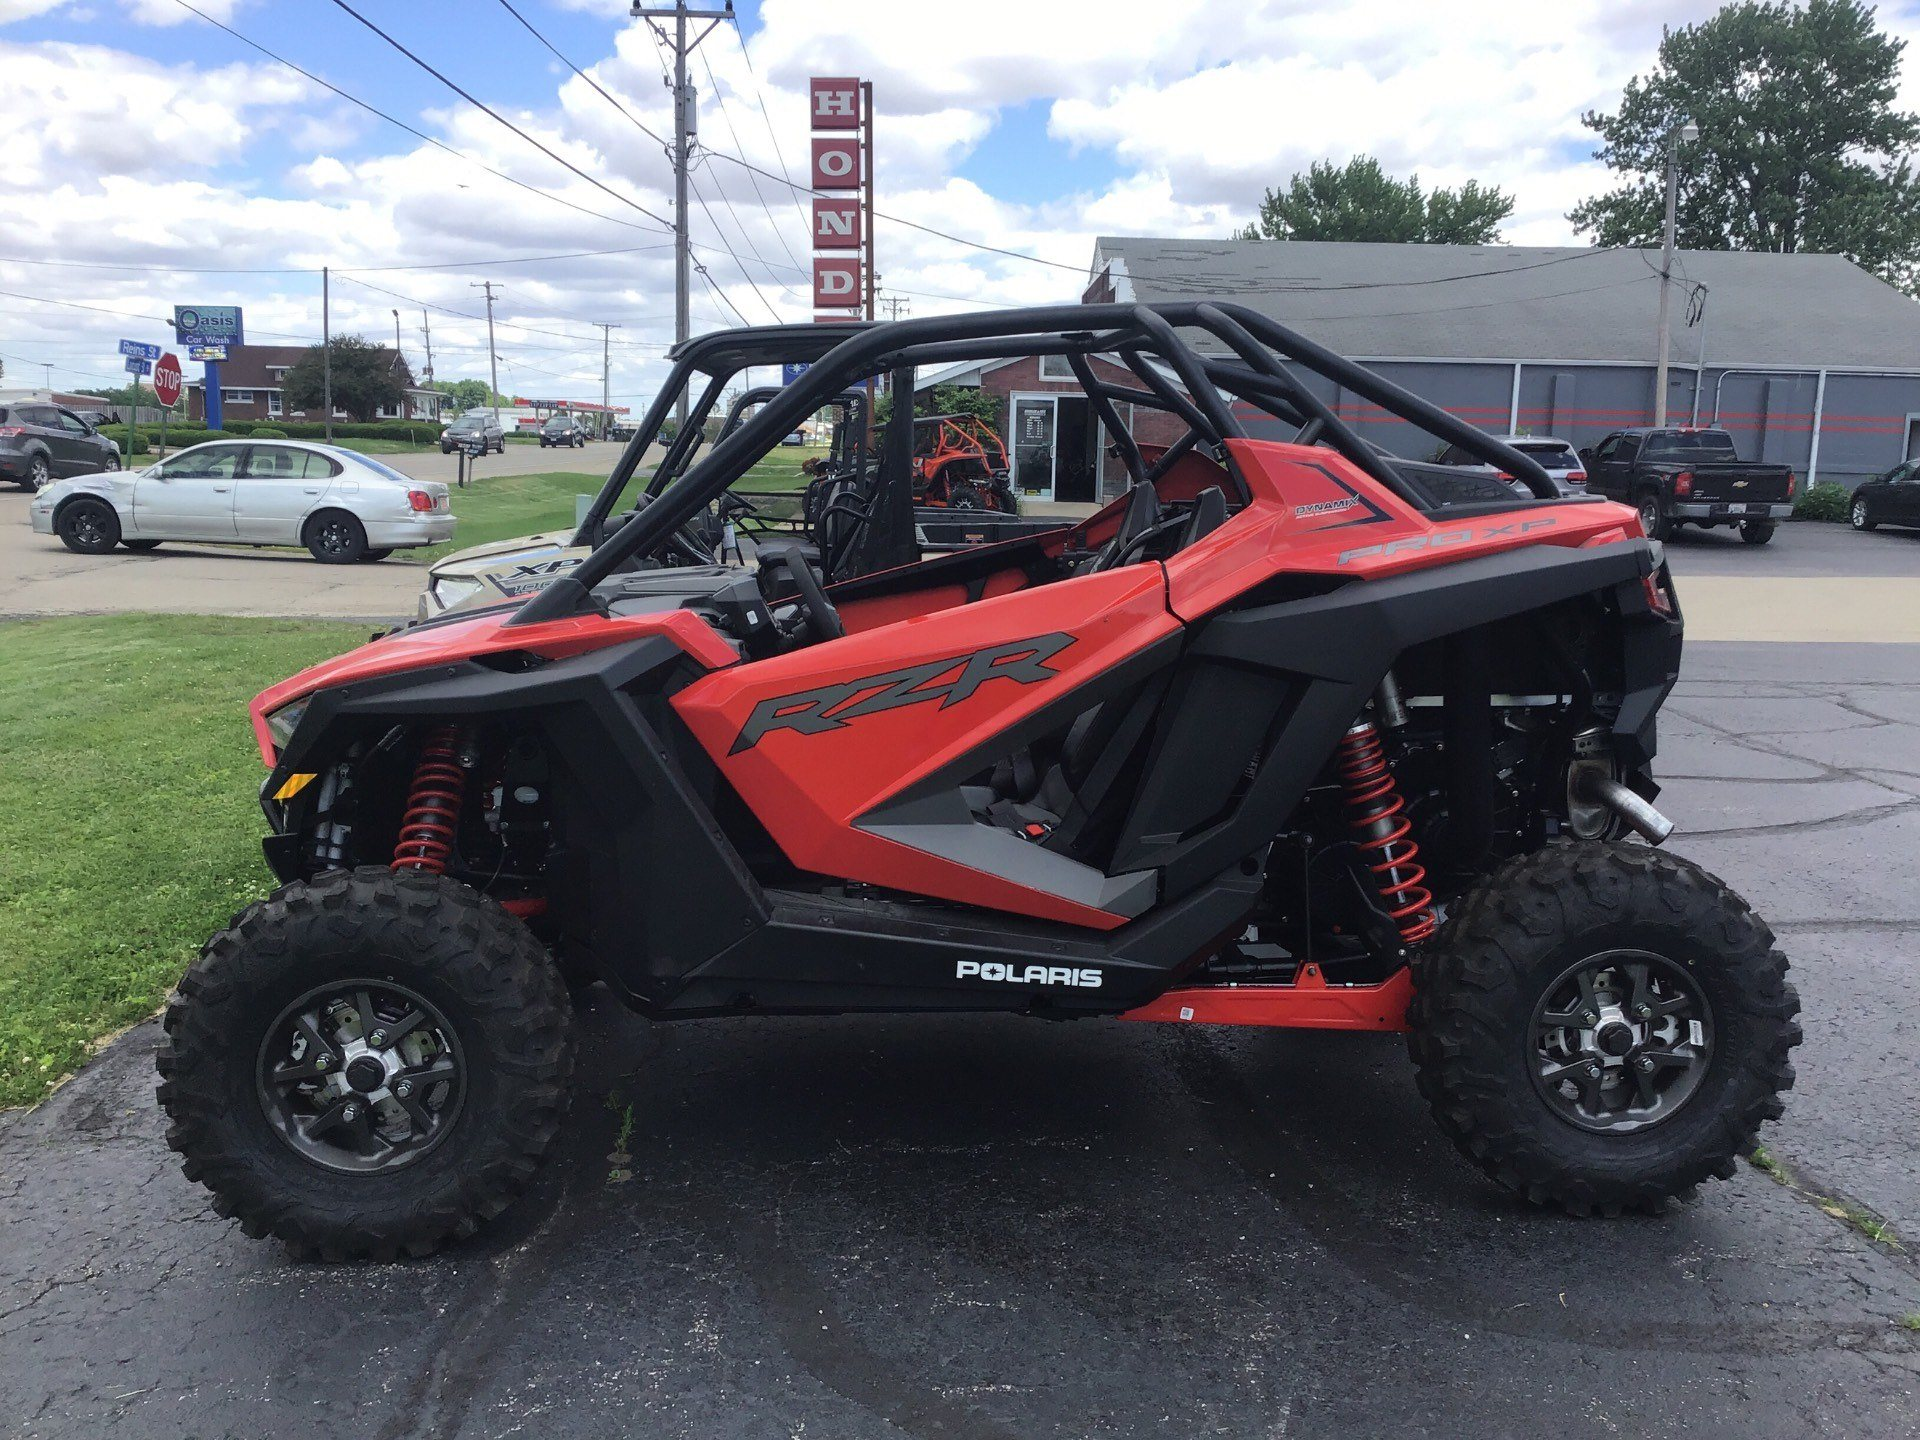 2020 Polaris RZR-20 64 T OTP1 I in Sterling, Illinois - Photo 2